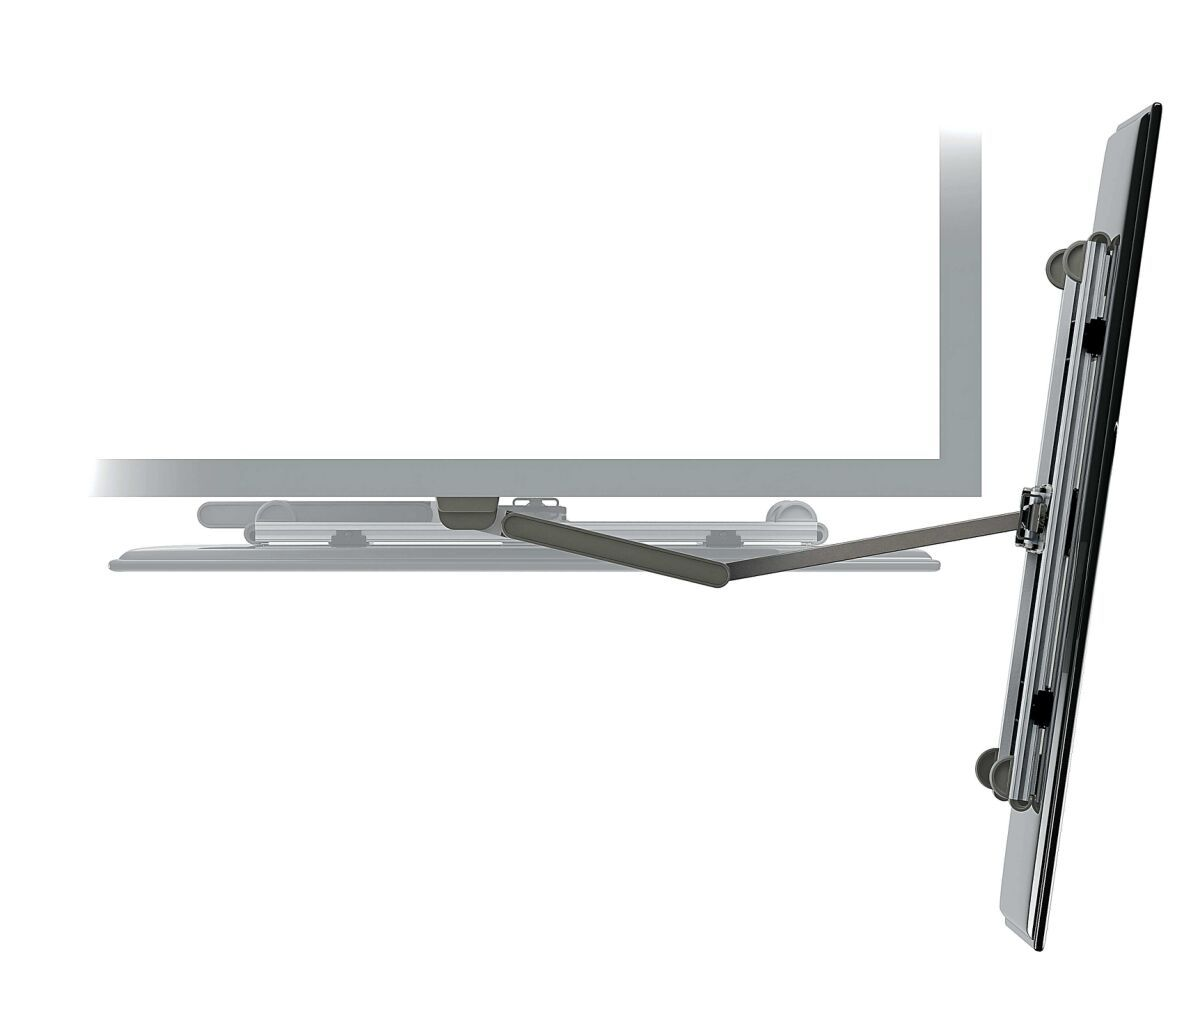 Vogel's THIN 245 UltraThin Full-Motion TV Wall Mount (black) - Suitable for 26 up to 55 inch TVs - Full motion (up to 180°) - Tilt up to 20° - Top view